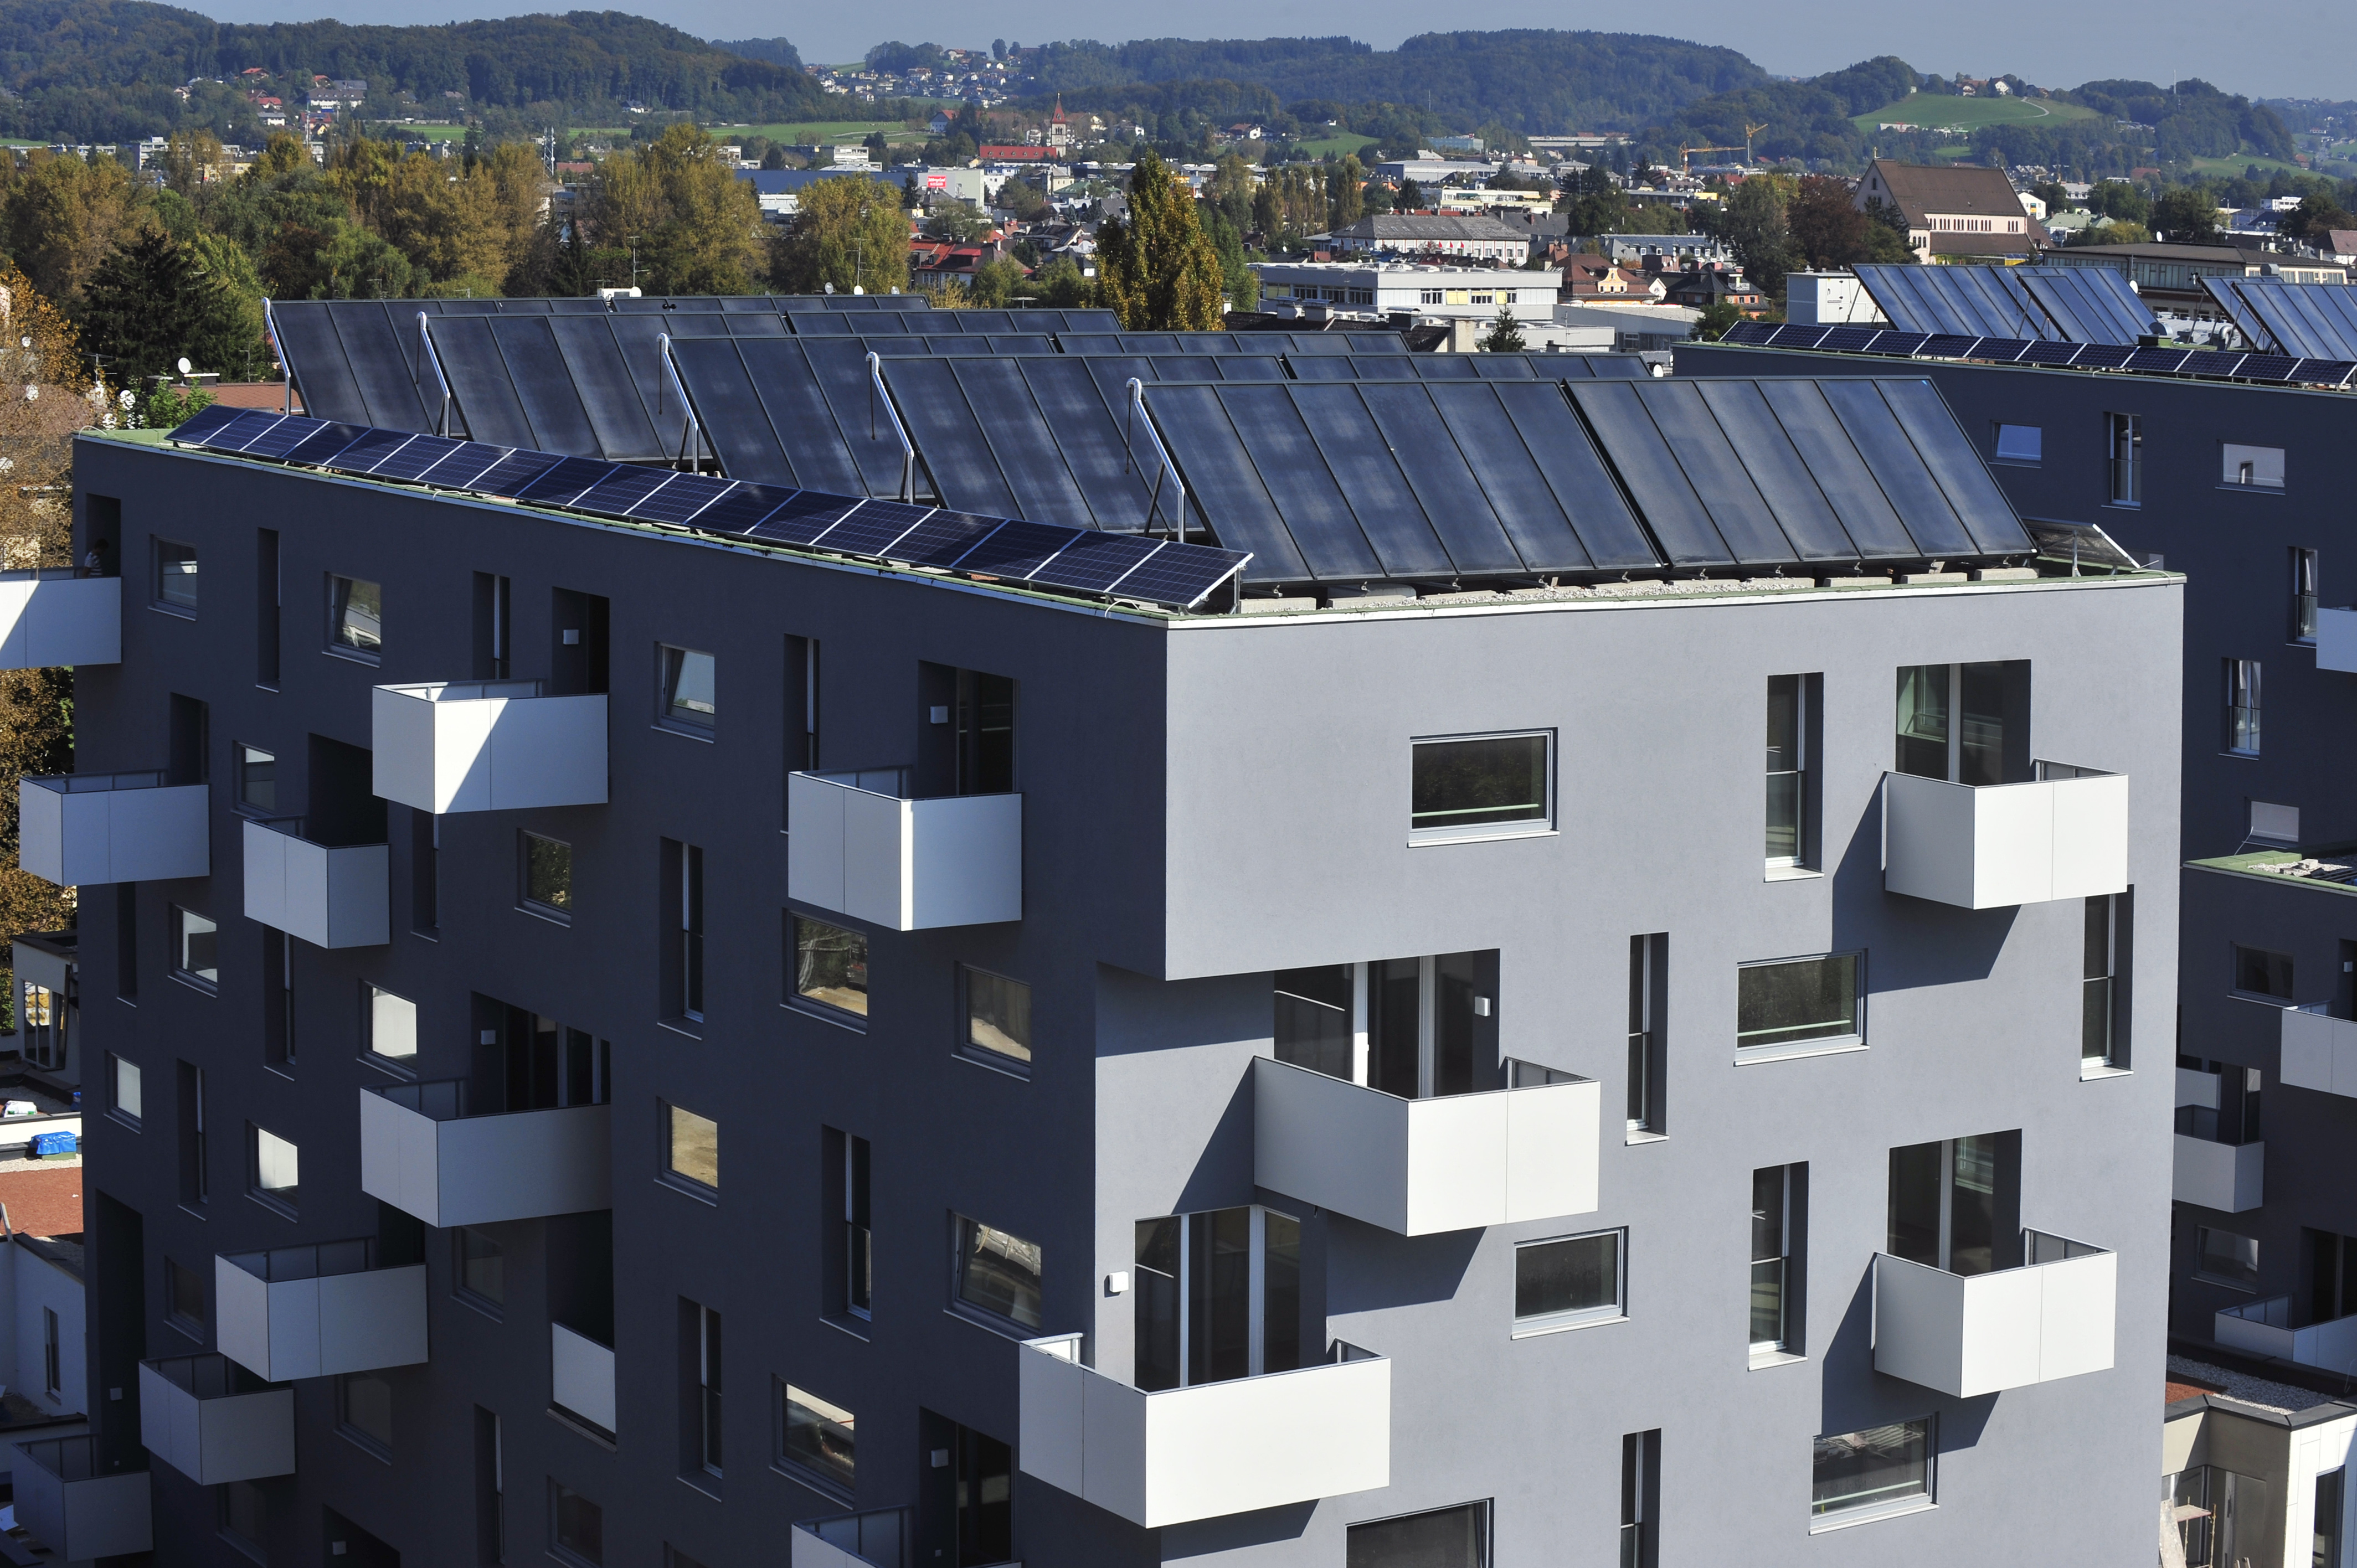 On the roof of the houses totally 2000 m² thermal solar collector and 50 kWp photovoltaics are installed in Salzburg Lehen